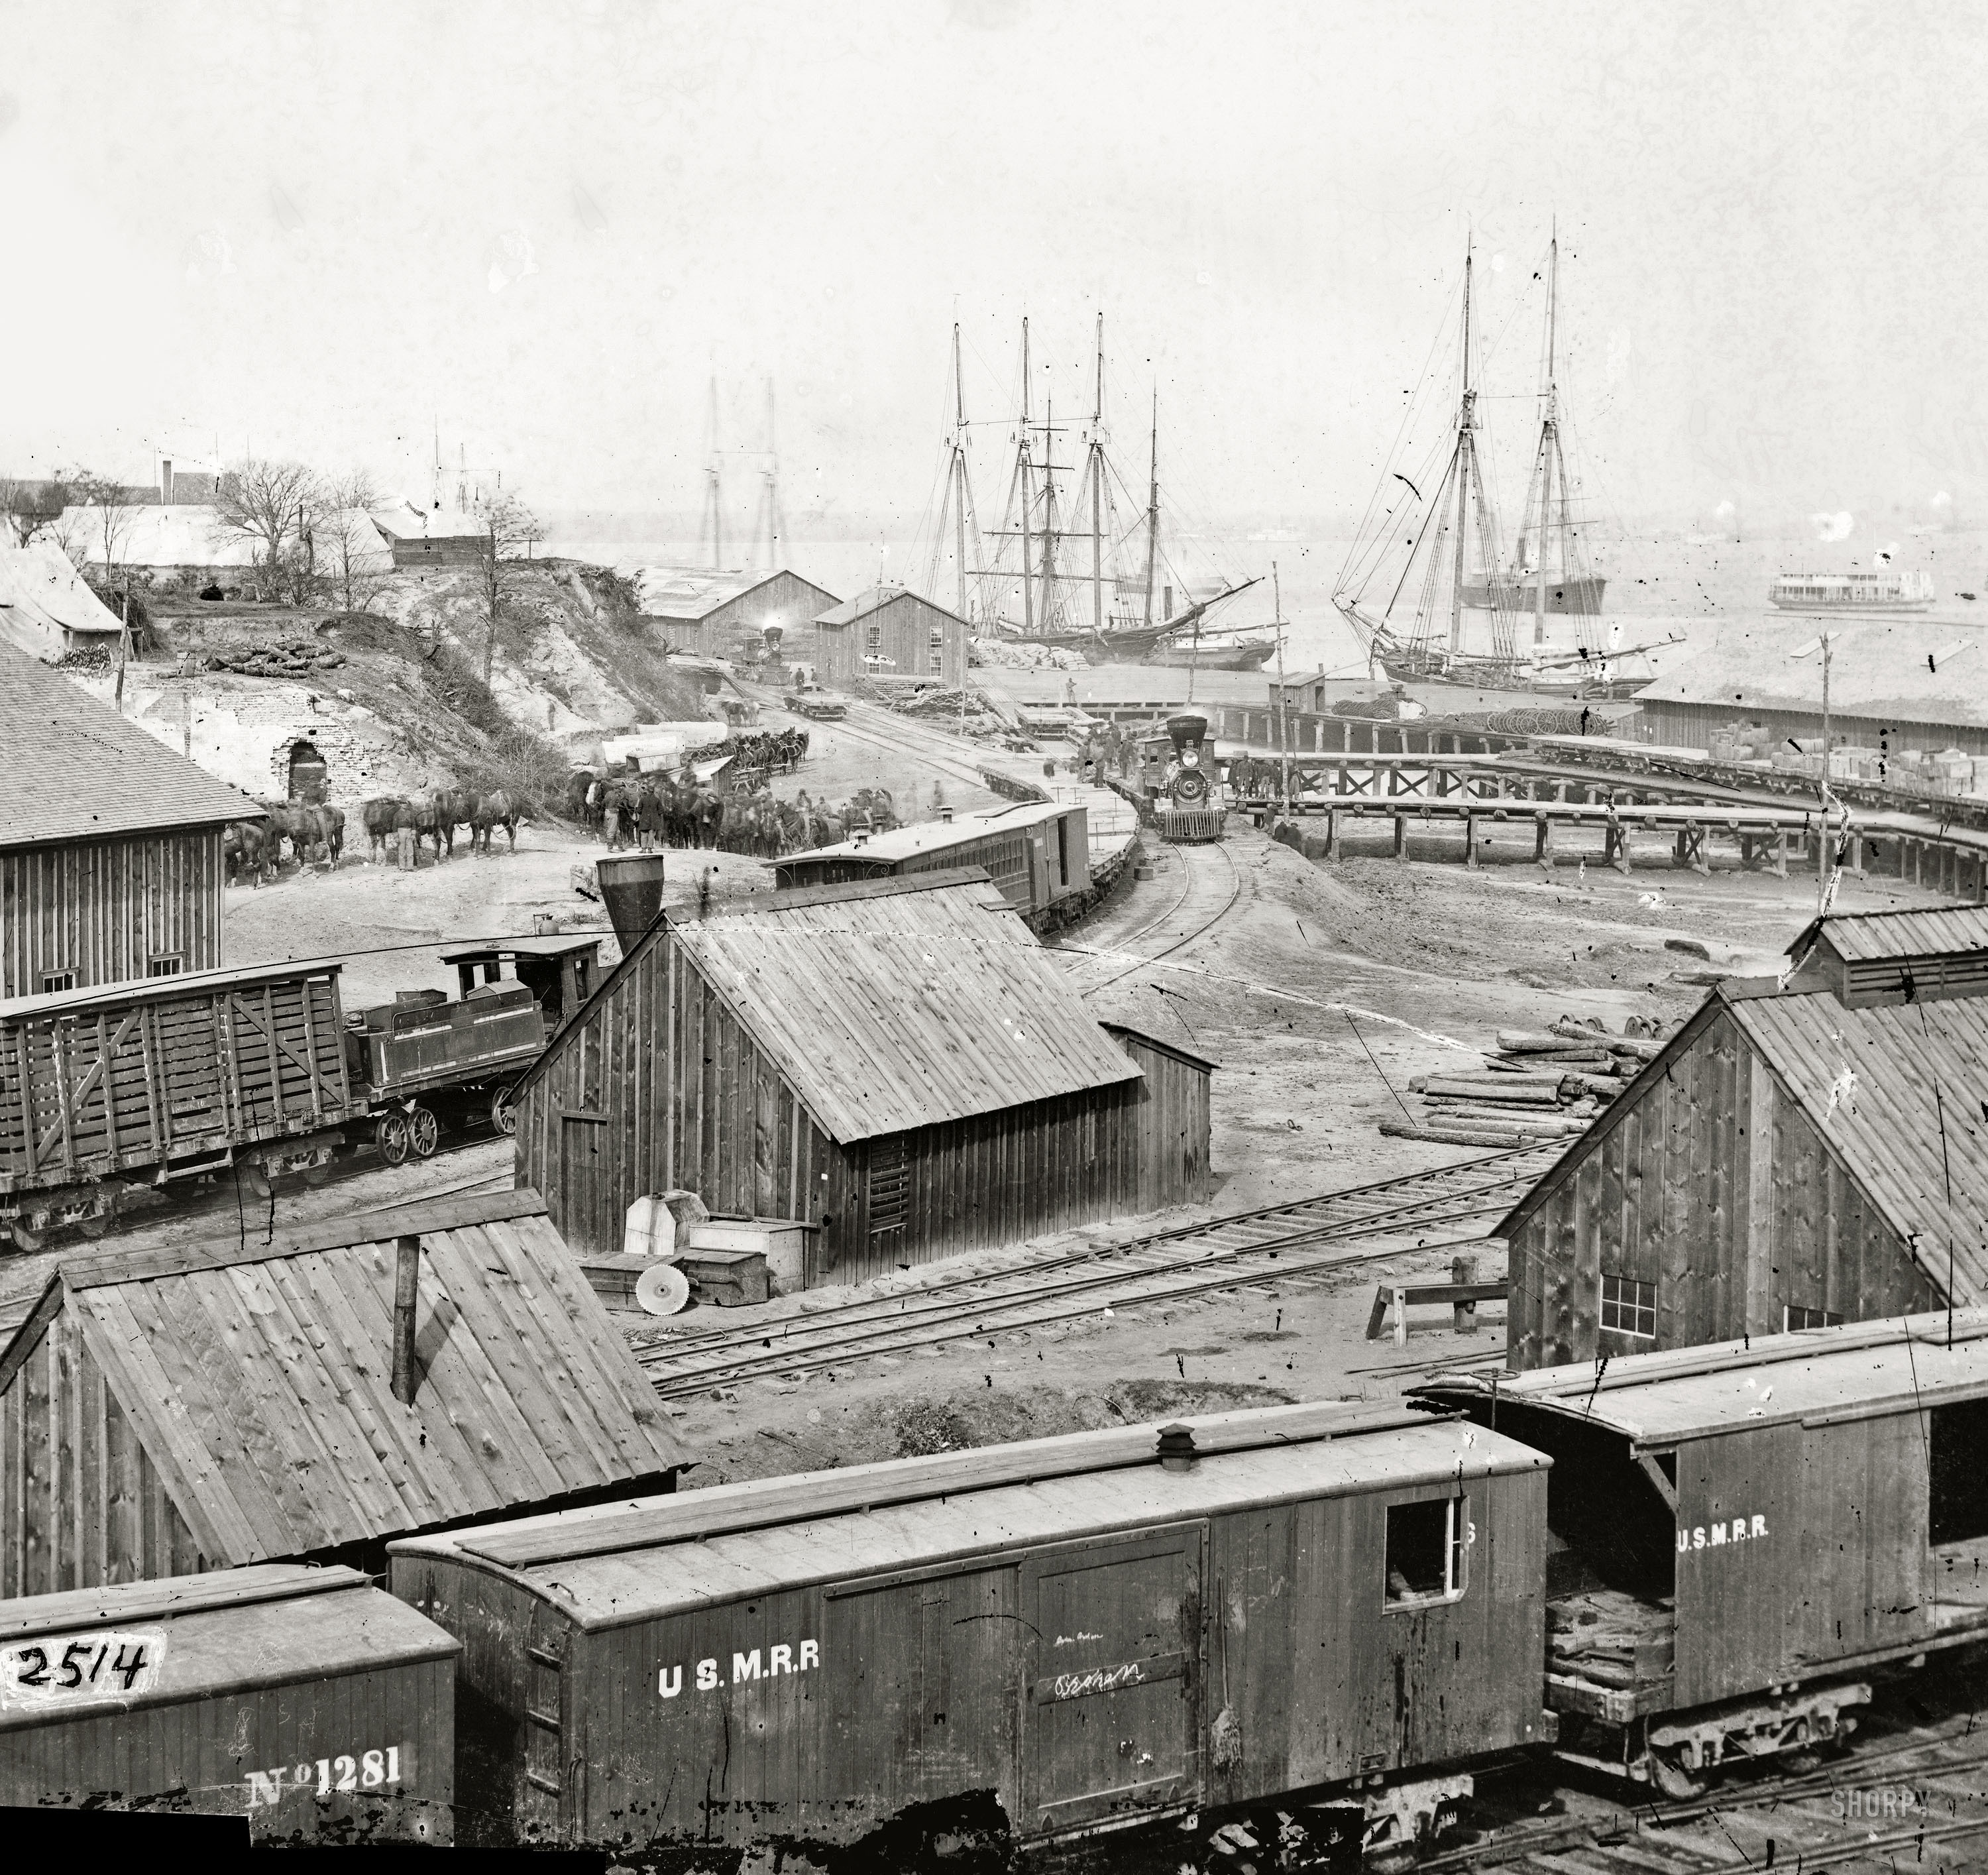 Virginia railroad yard and HD Wallpaper